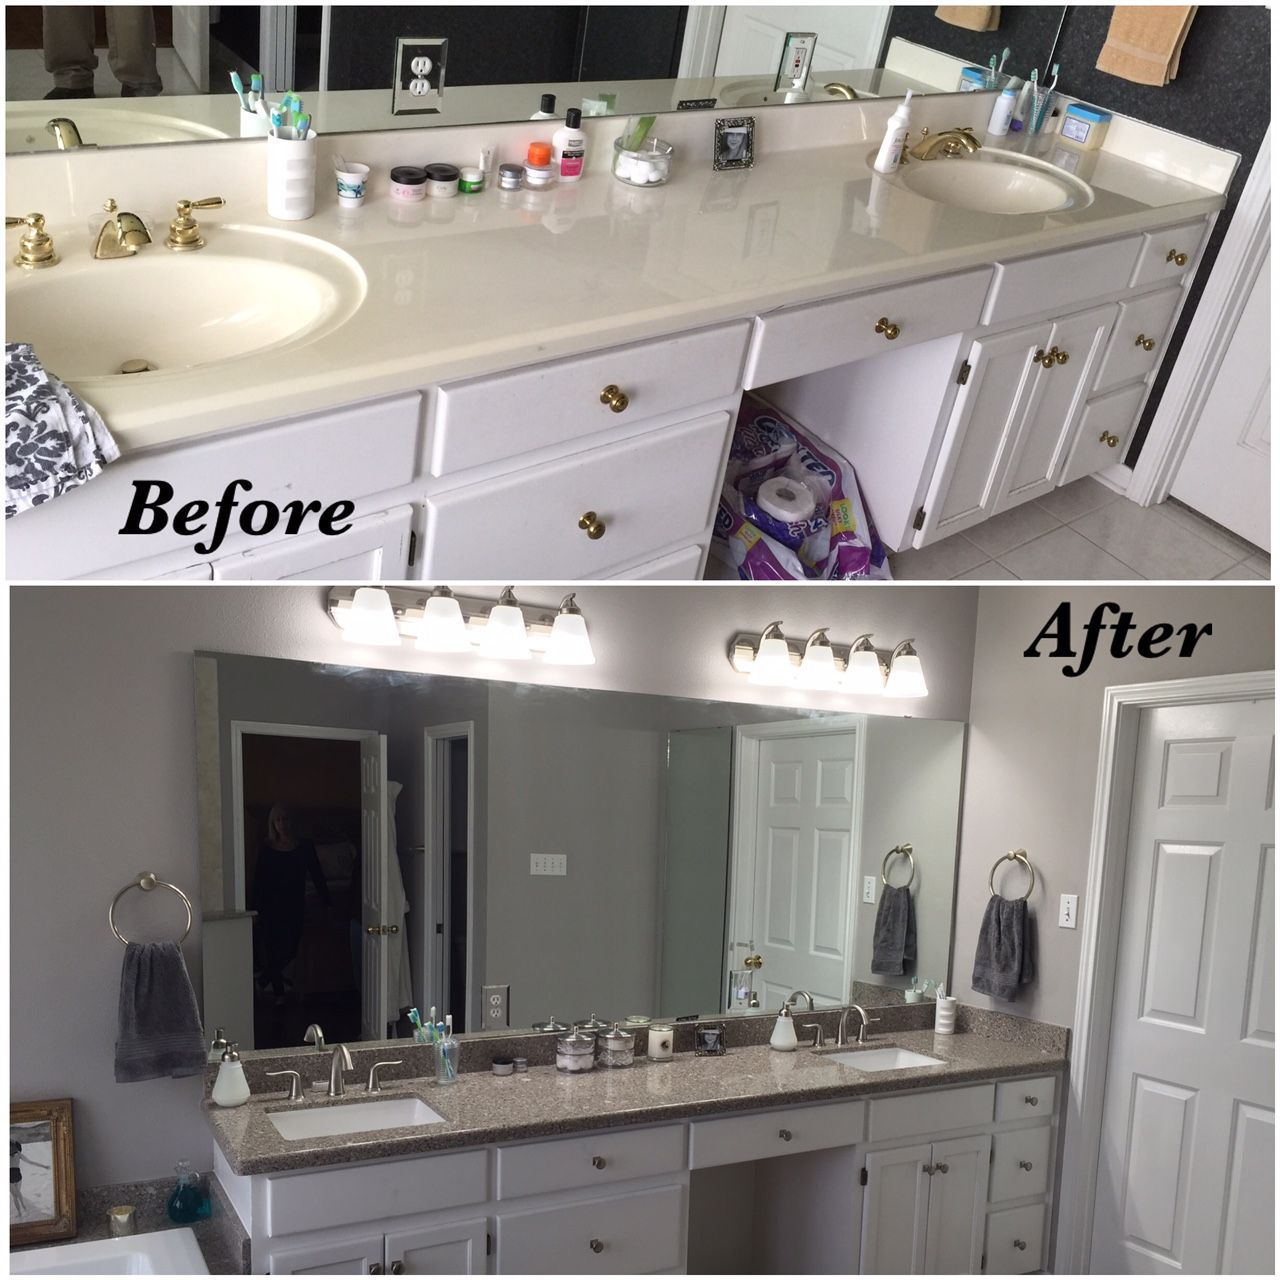 Best New Custom Quartz Alpine White Vanity Top With Full Paint 400 x 300